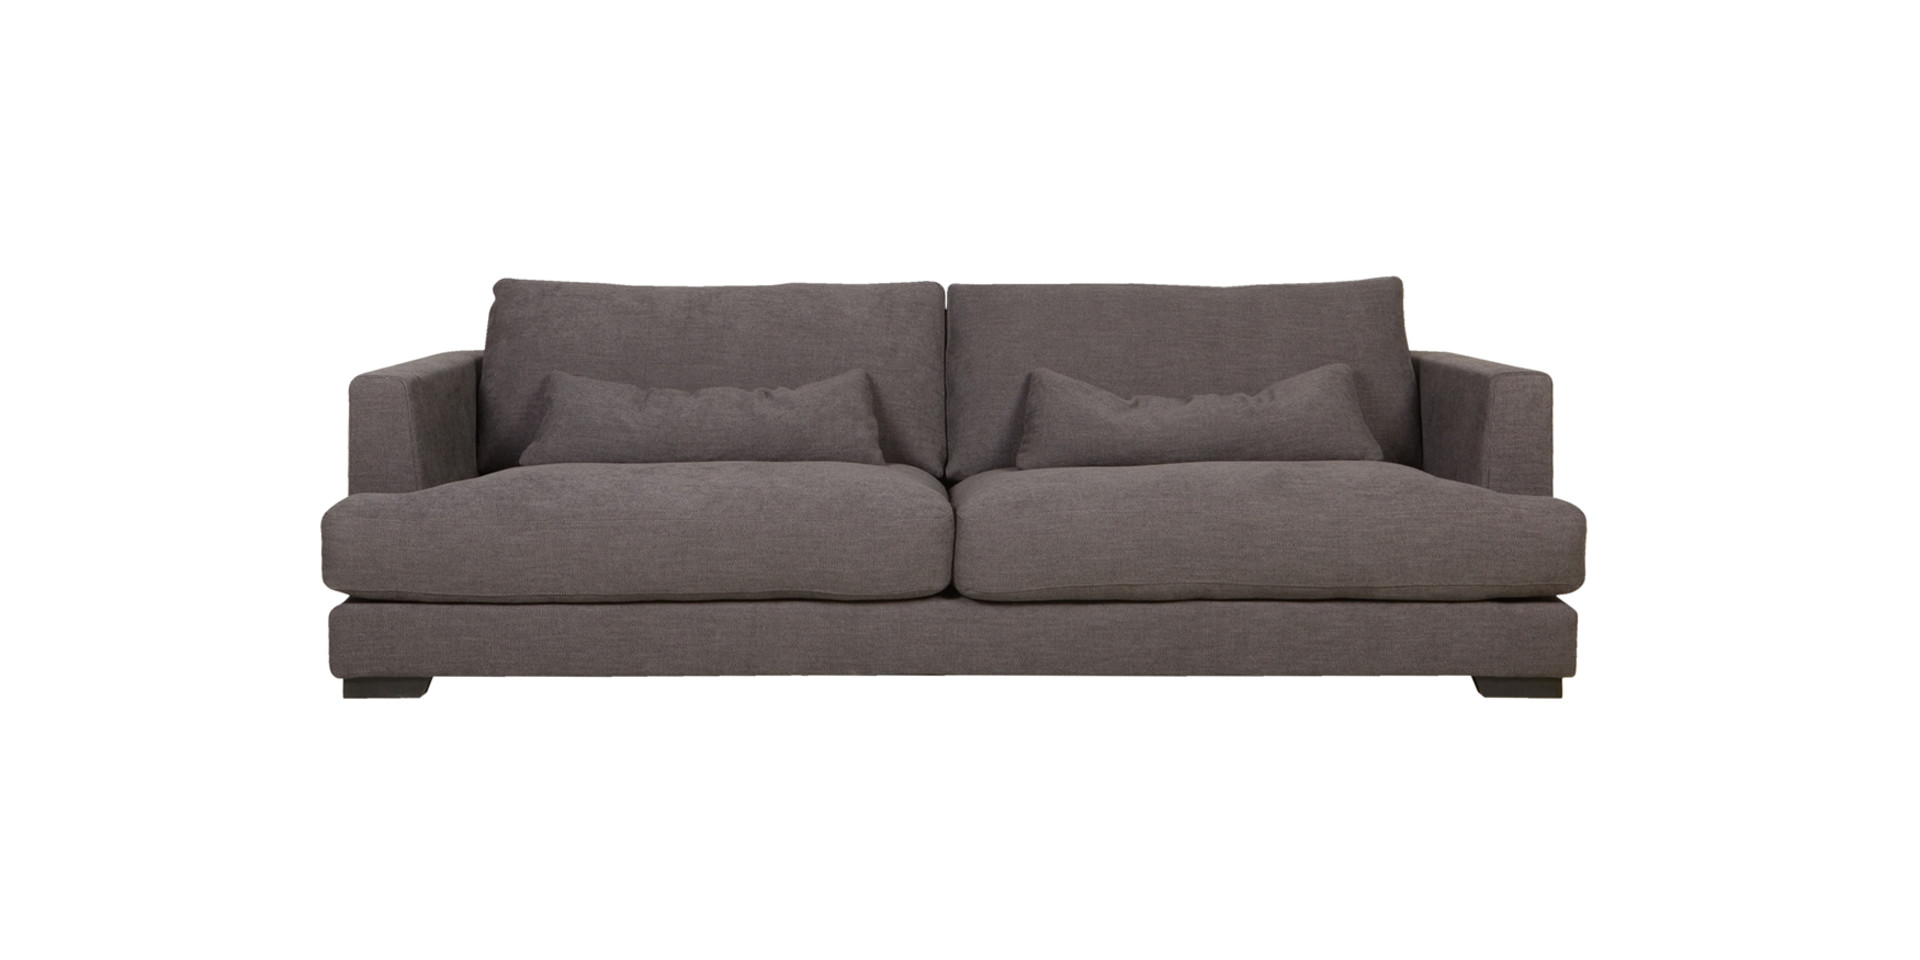 sits-brandon-canape-3seater_roma1_dark_grey_1